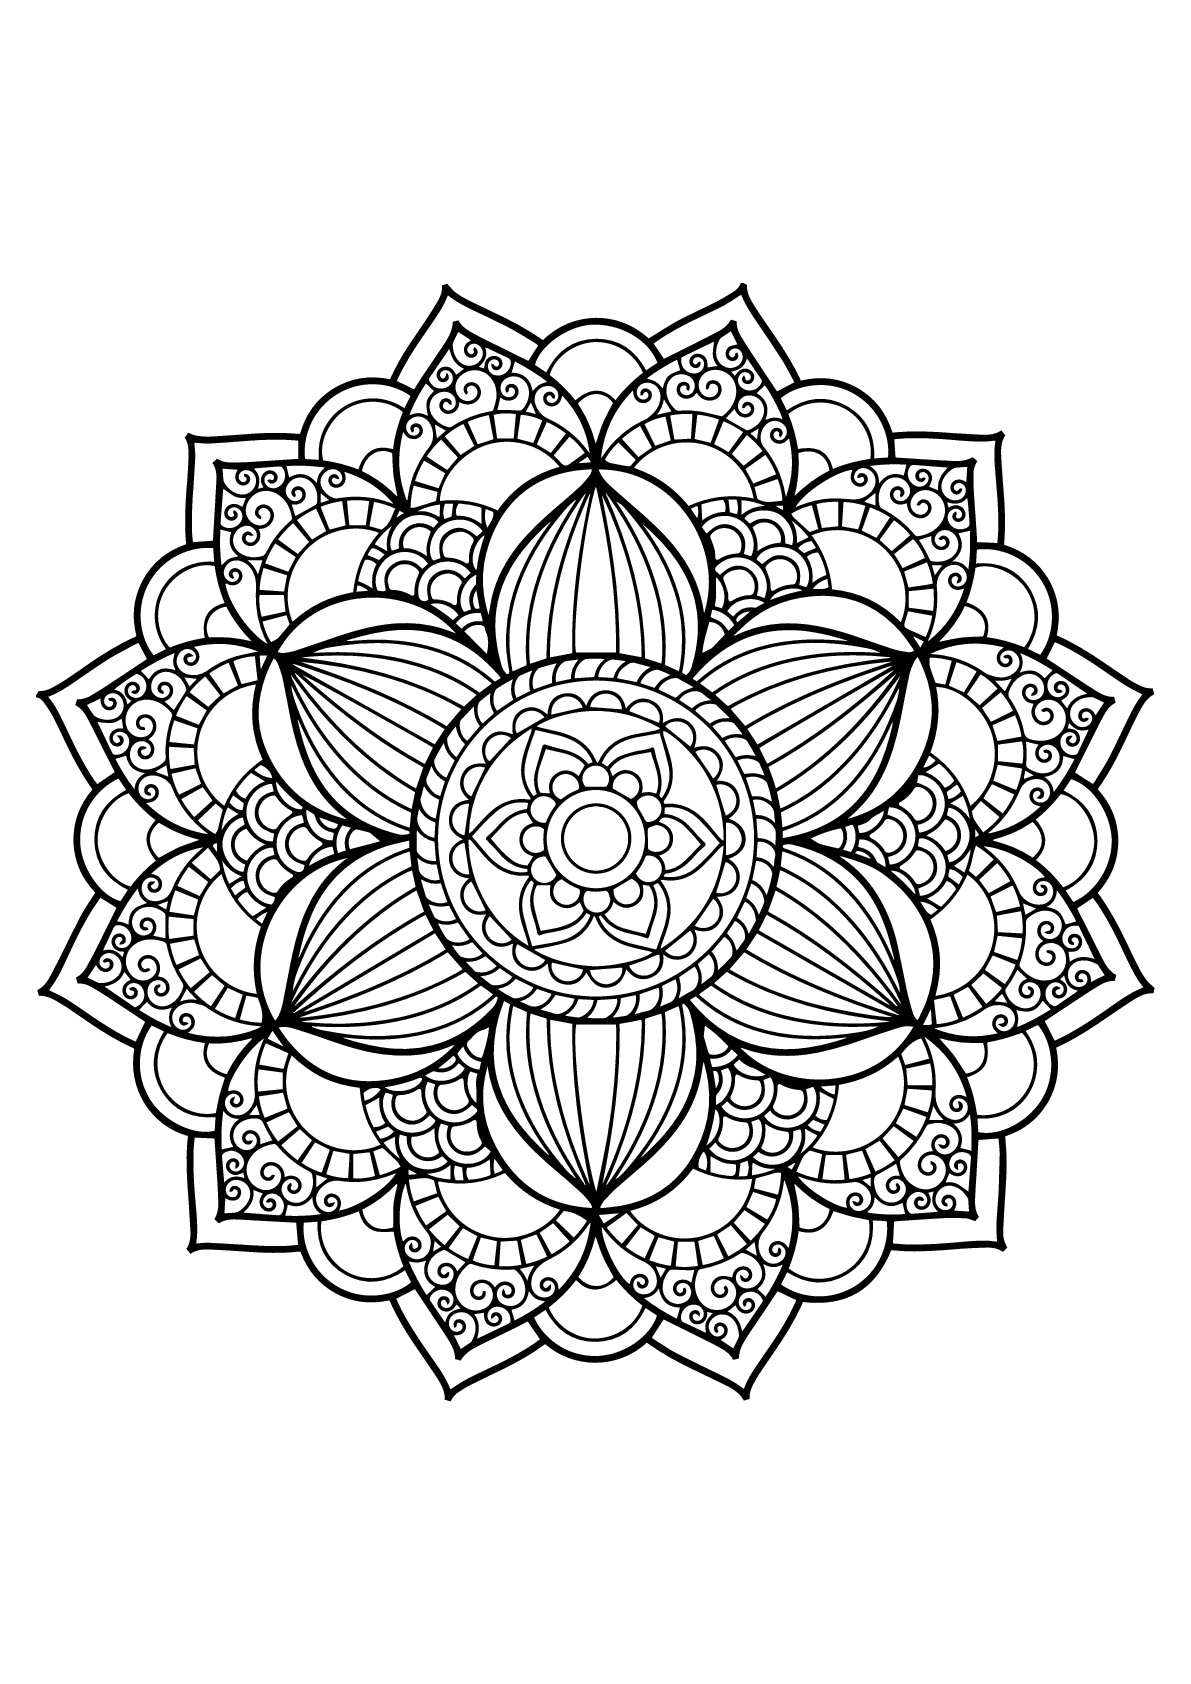 Mandala from free book for 17 | Mandalas - Coloring pages for ...